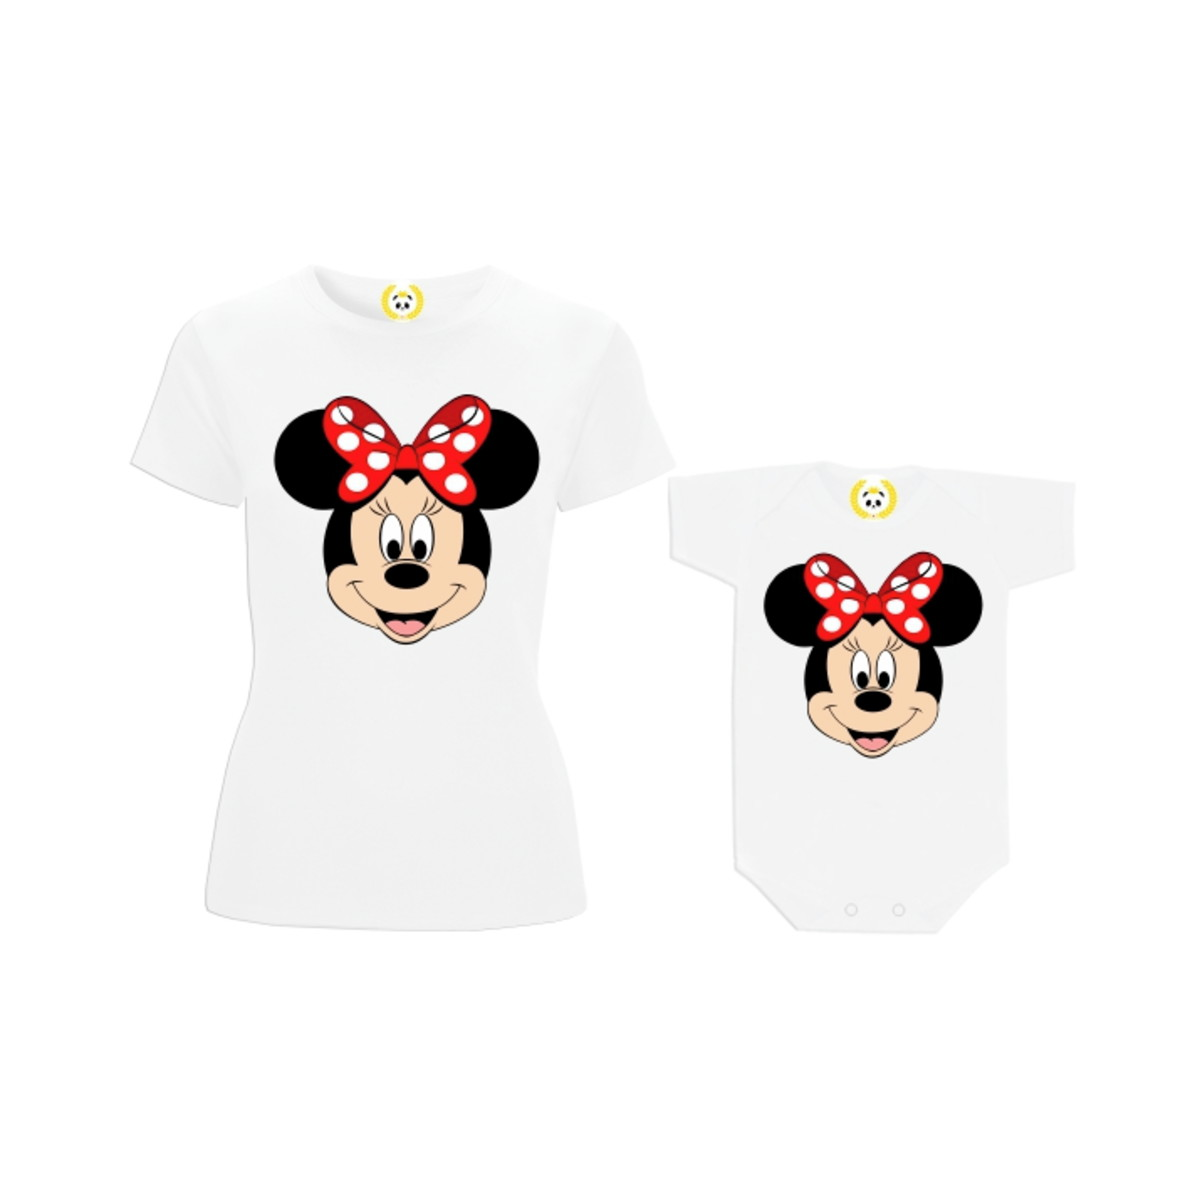 f6296be56 Kit Camiseta Minnie Mouse Disney Laço Tal Mãe Tal Filha no Elo7 ...